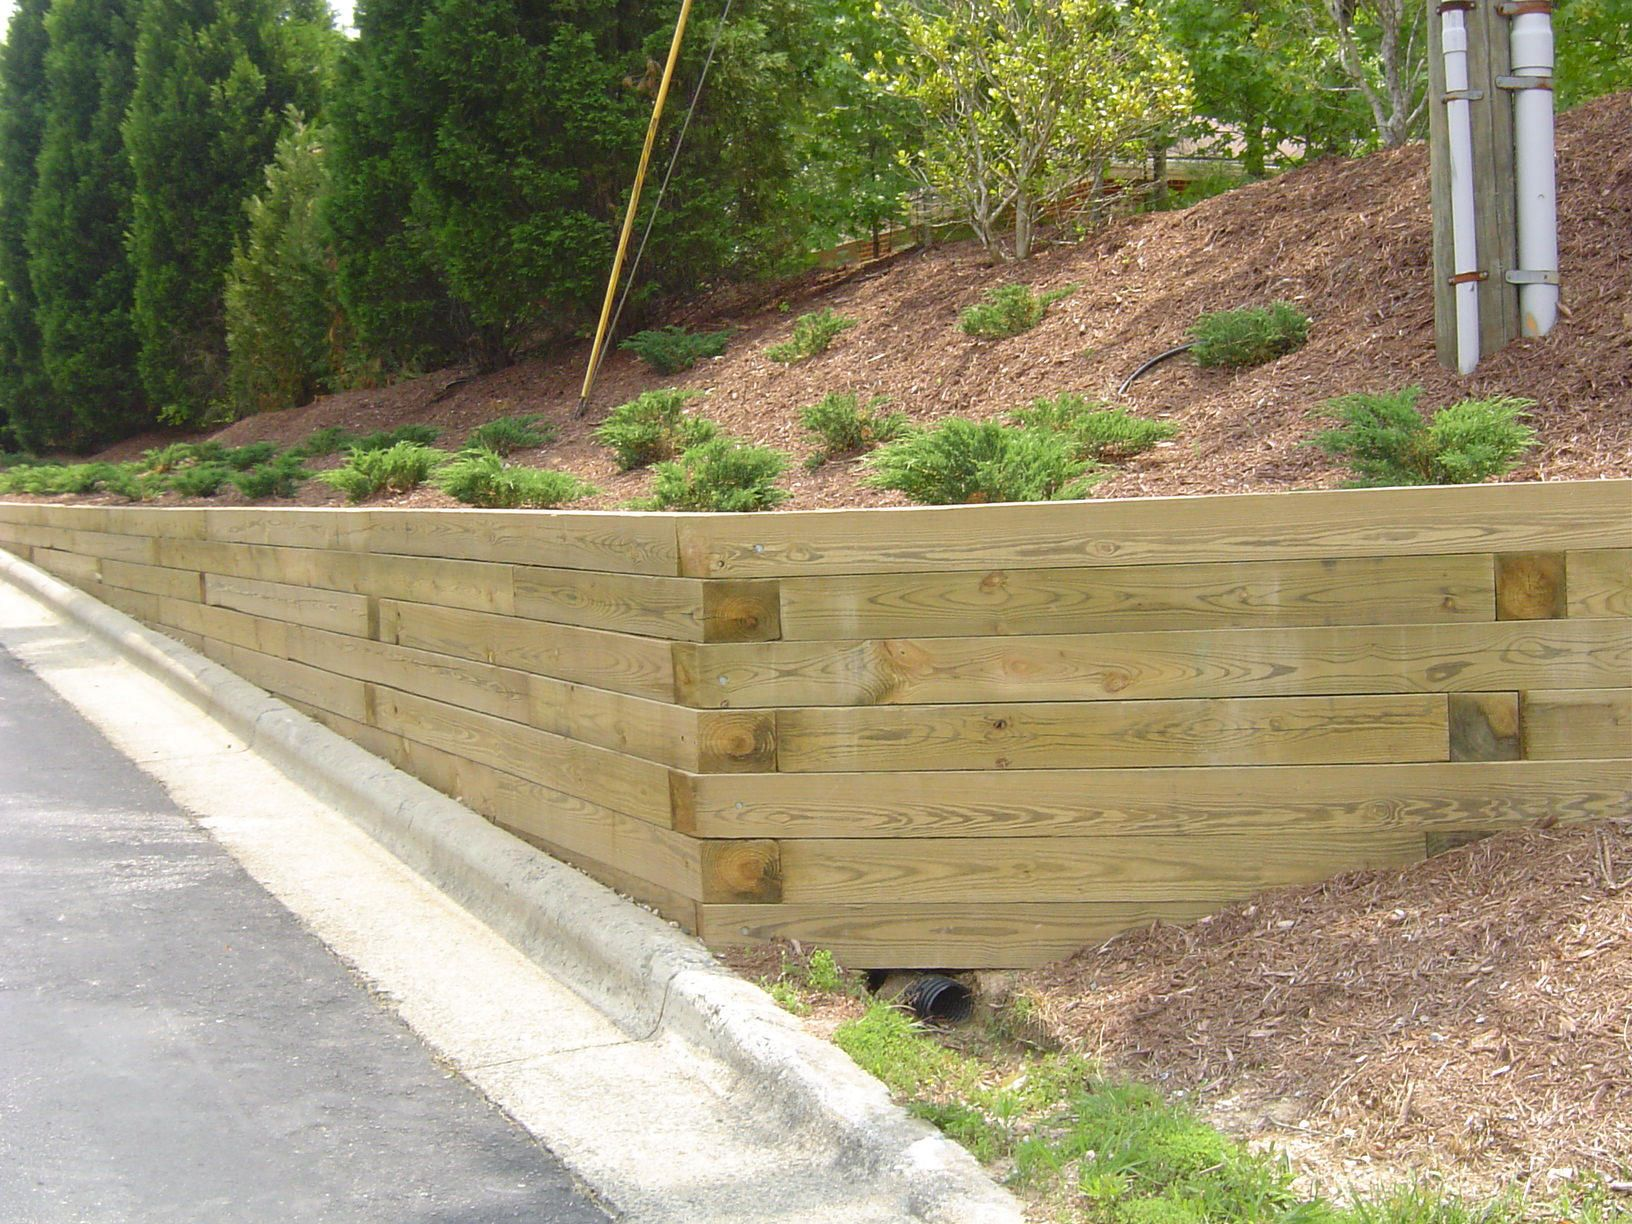 Timber Retaining Wall Designs 1000 images about retaining walls on retaining walls intended for landscape timber retaining wall ideas Backyard Retaining Walls